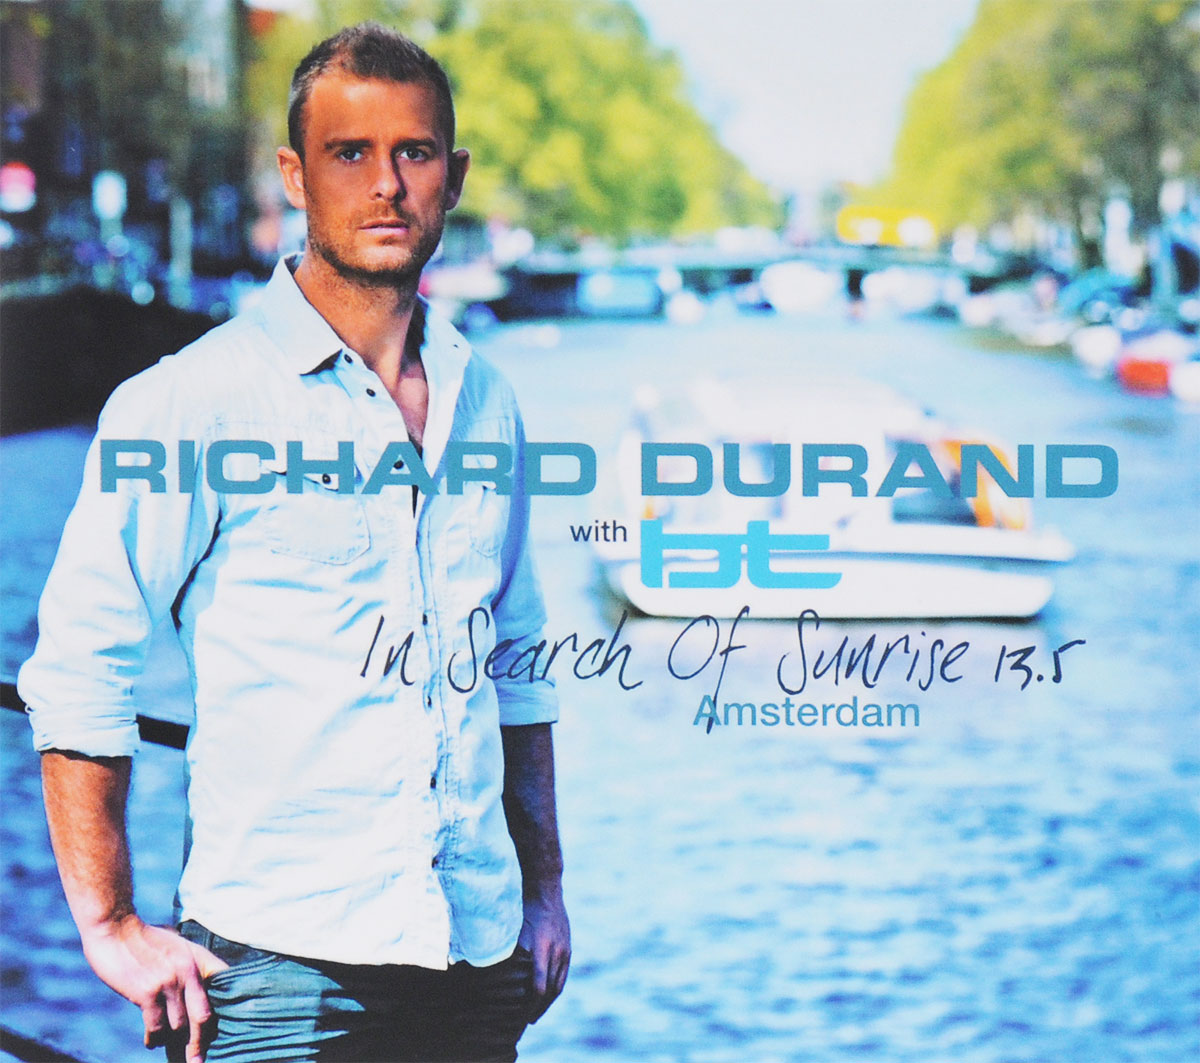 Richard Durand with BT. In Search Of Sunrise 13.5 Amsterdam (3 CD)